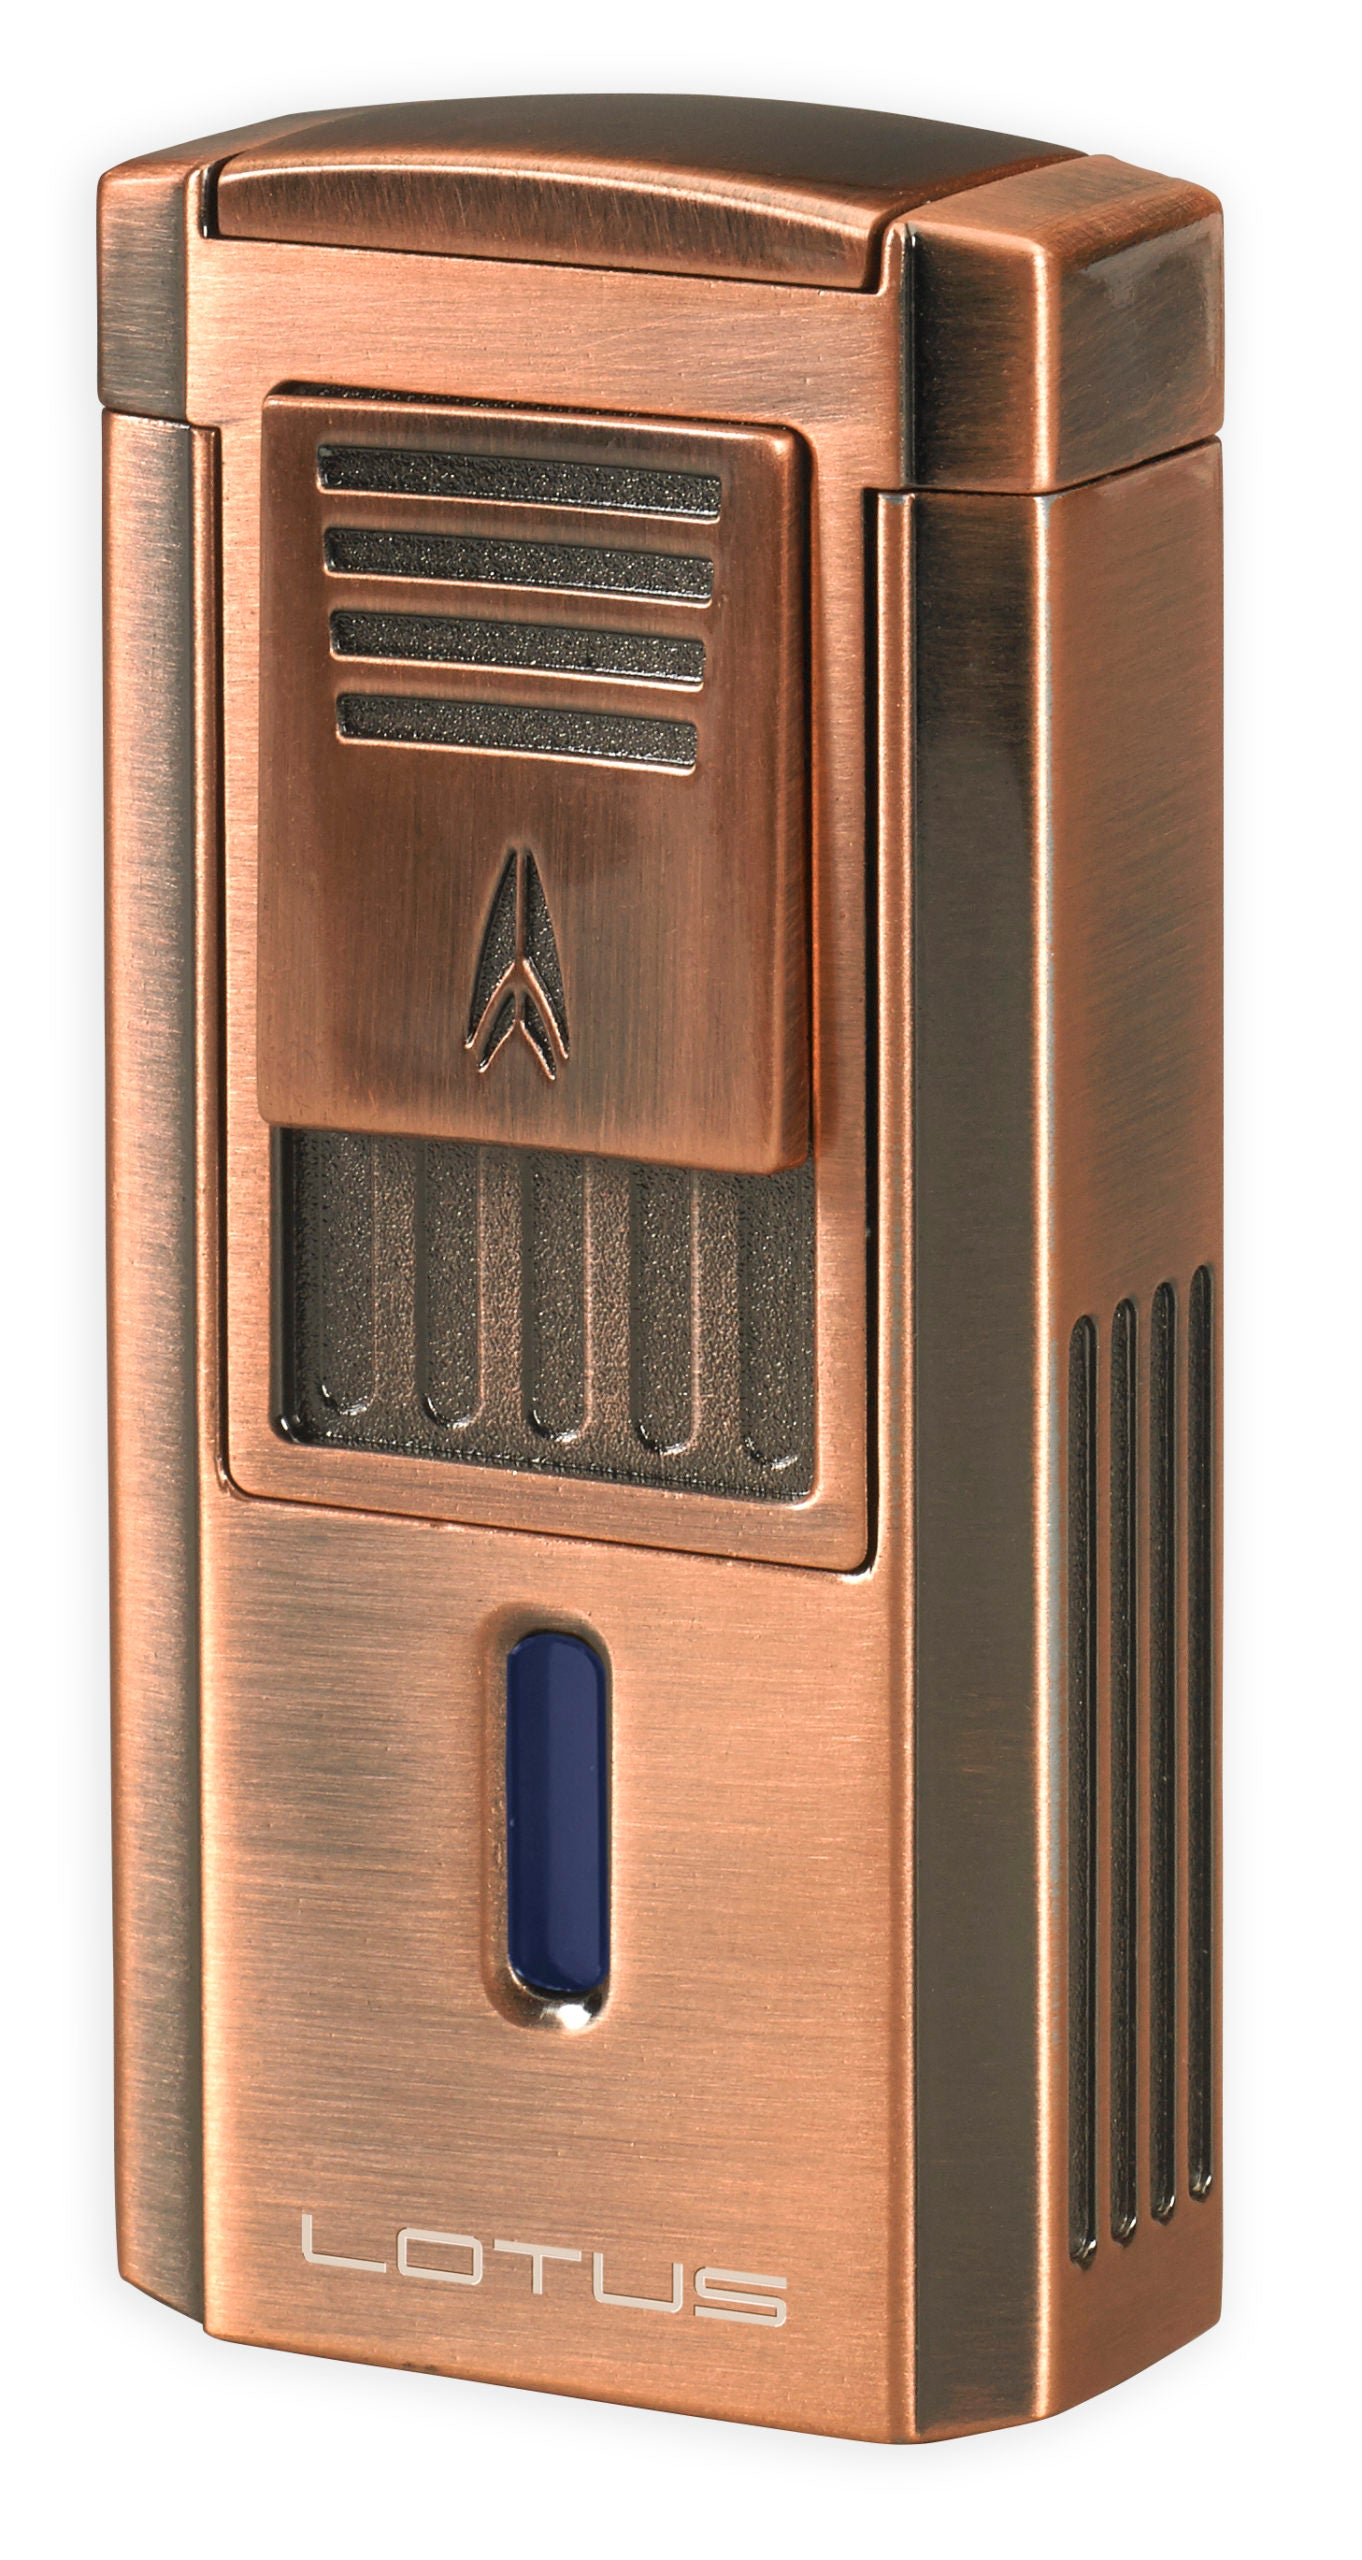 Lotus Duke Triple Flame Lighter with V-Cutter. Click here to see collection!